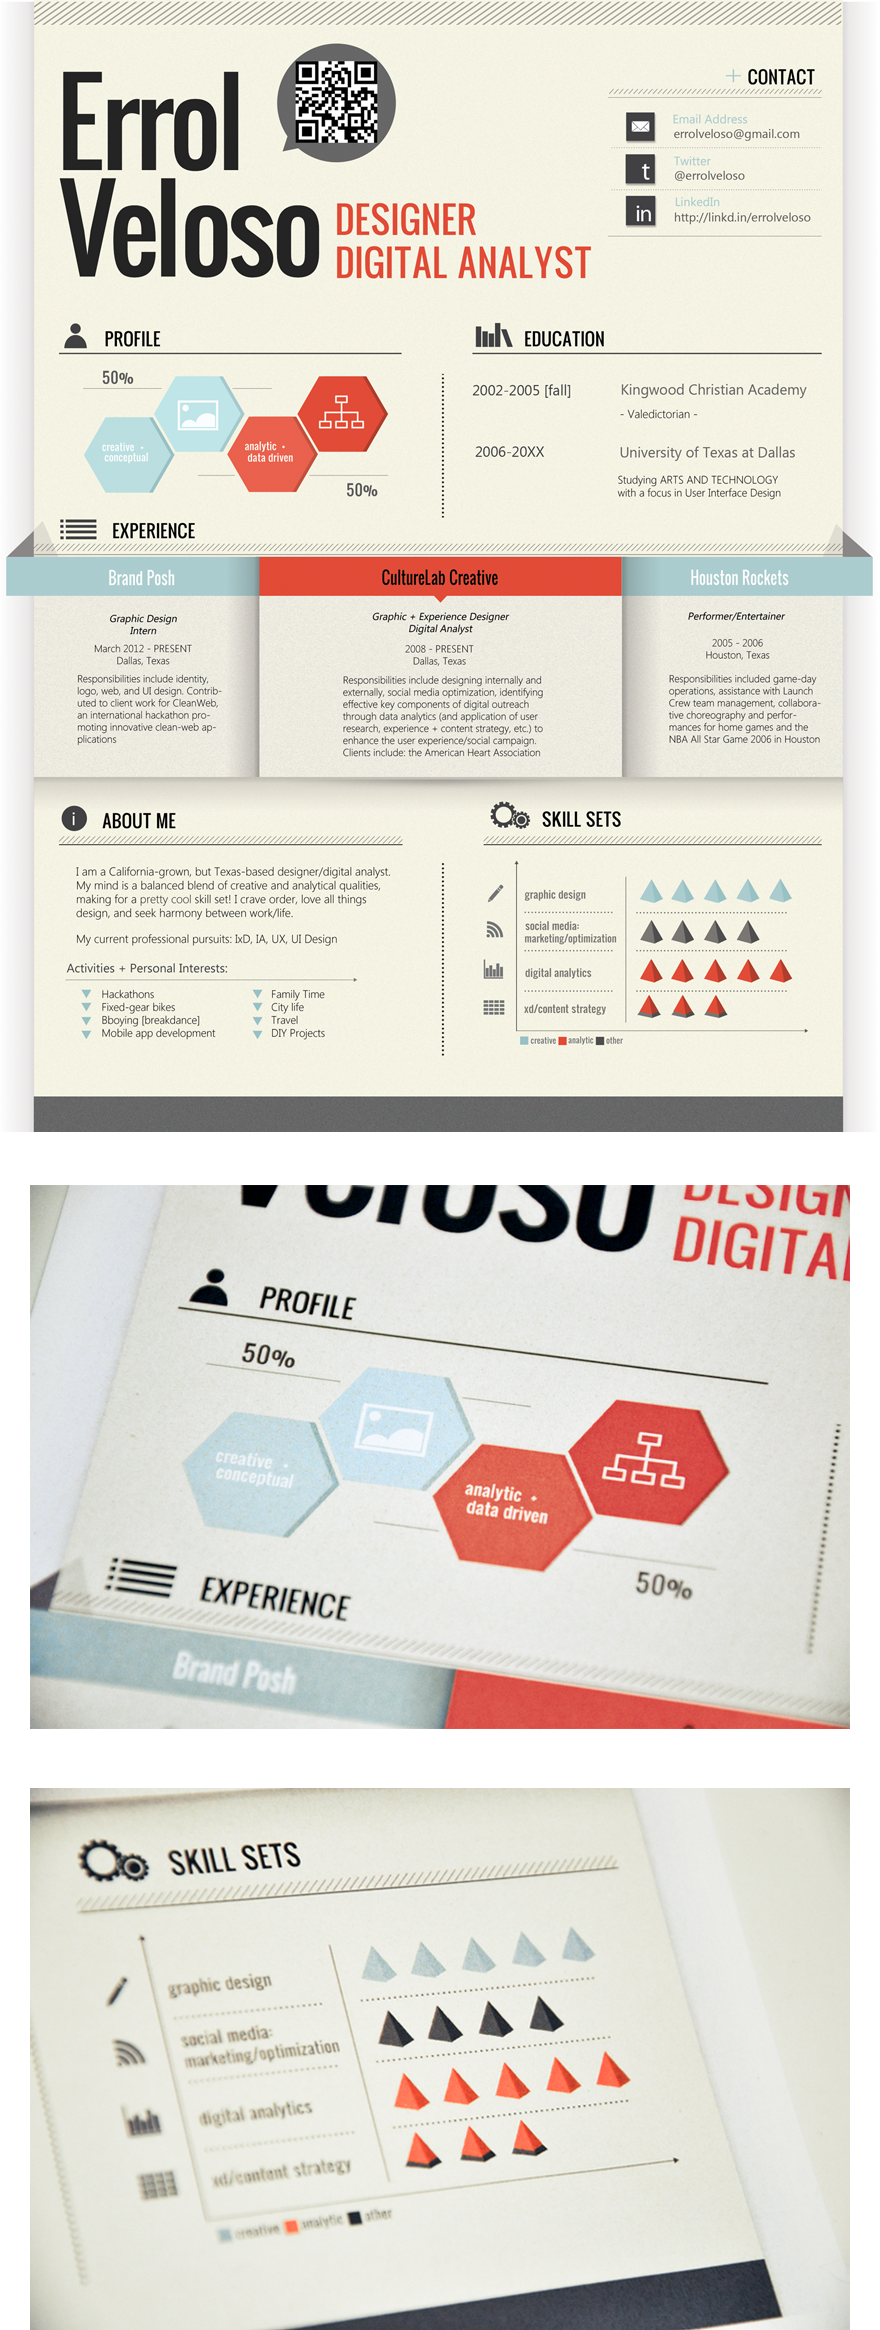 Infographic Resume By Errol Veloso Via Creattica  Infographics